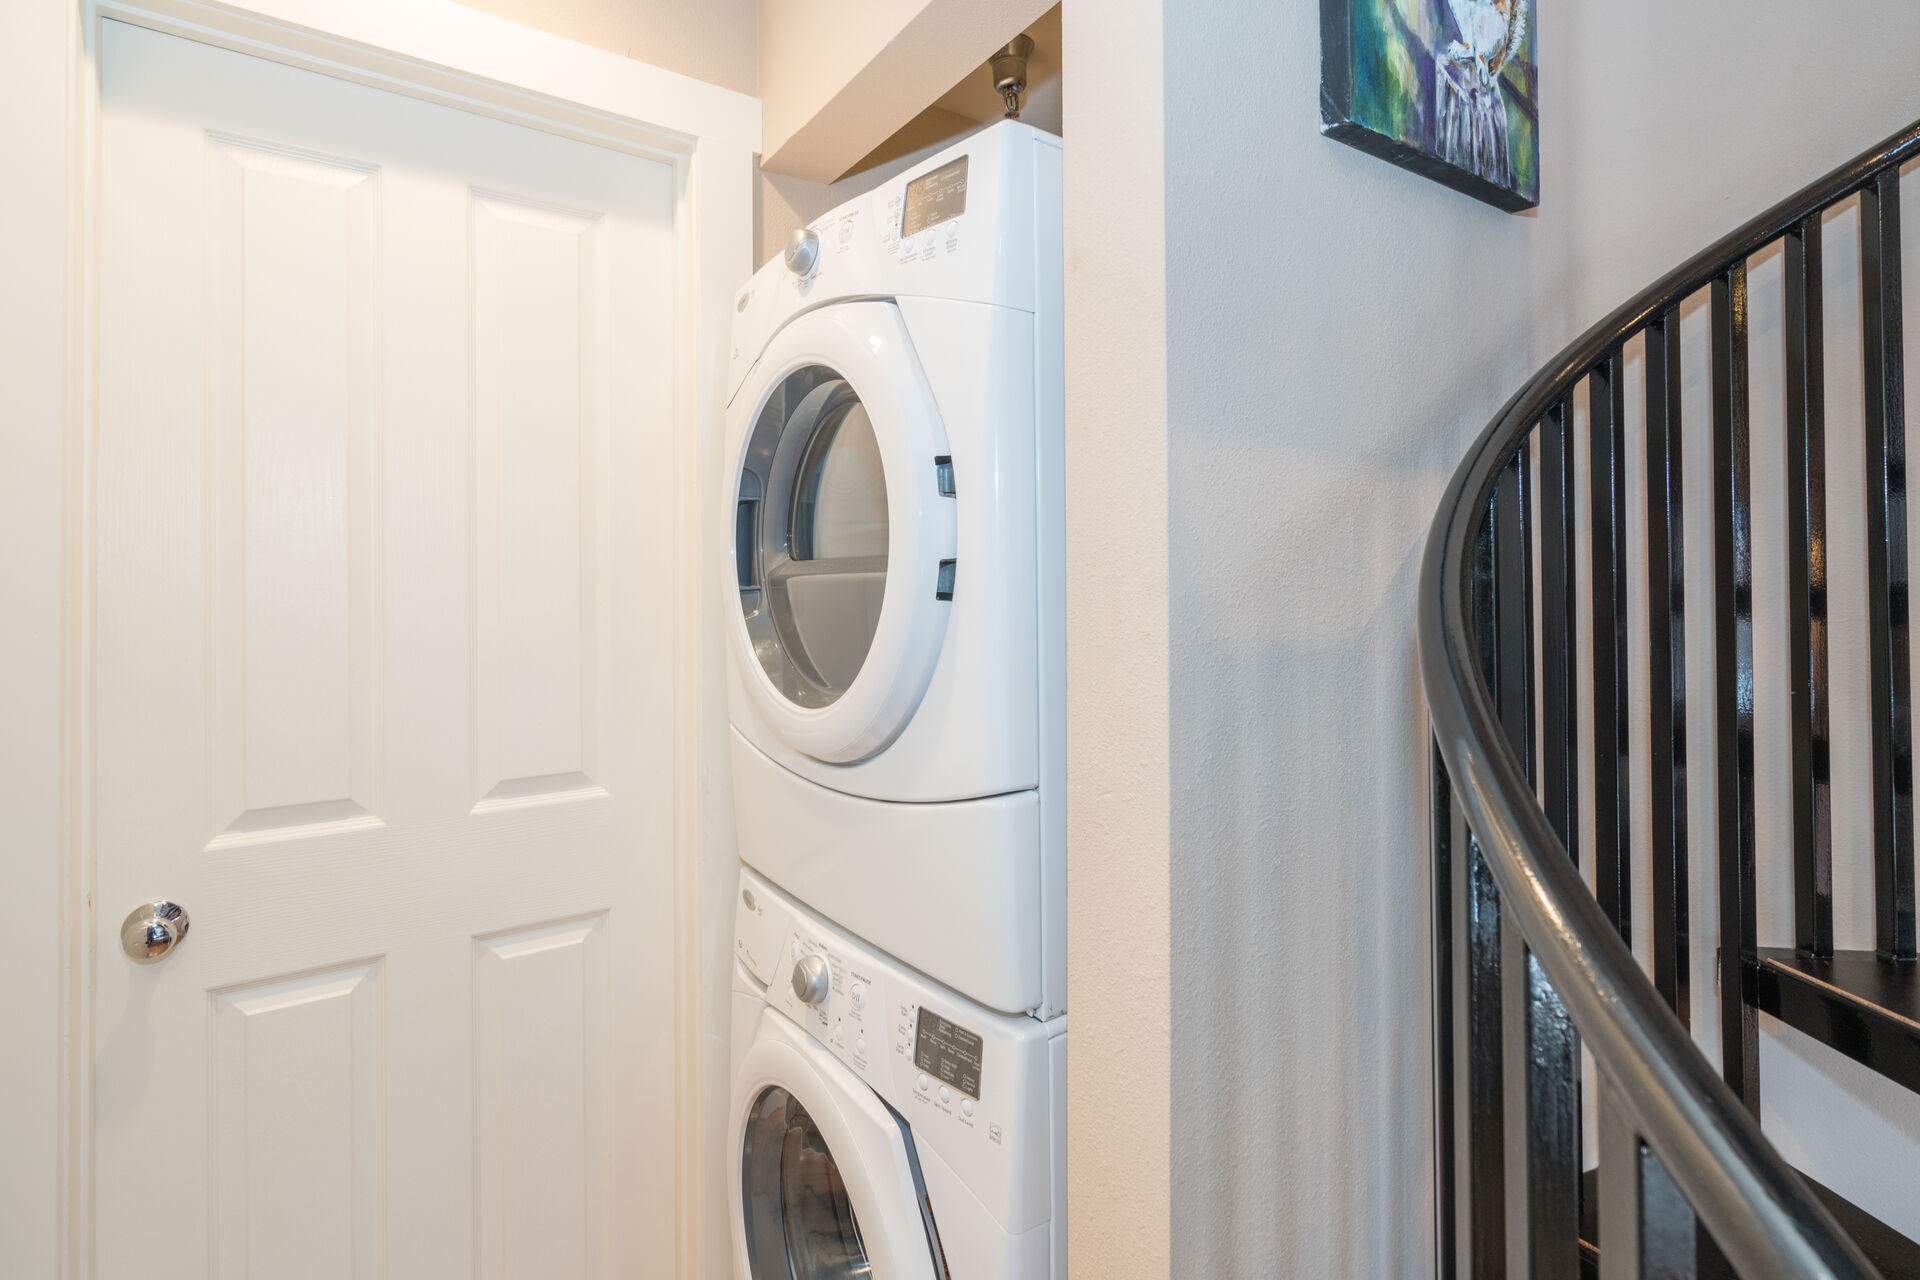 In-Unit Washer and Dryer next to Spiral Staircase to Second Floor at Parker Ridge 503